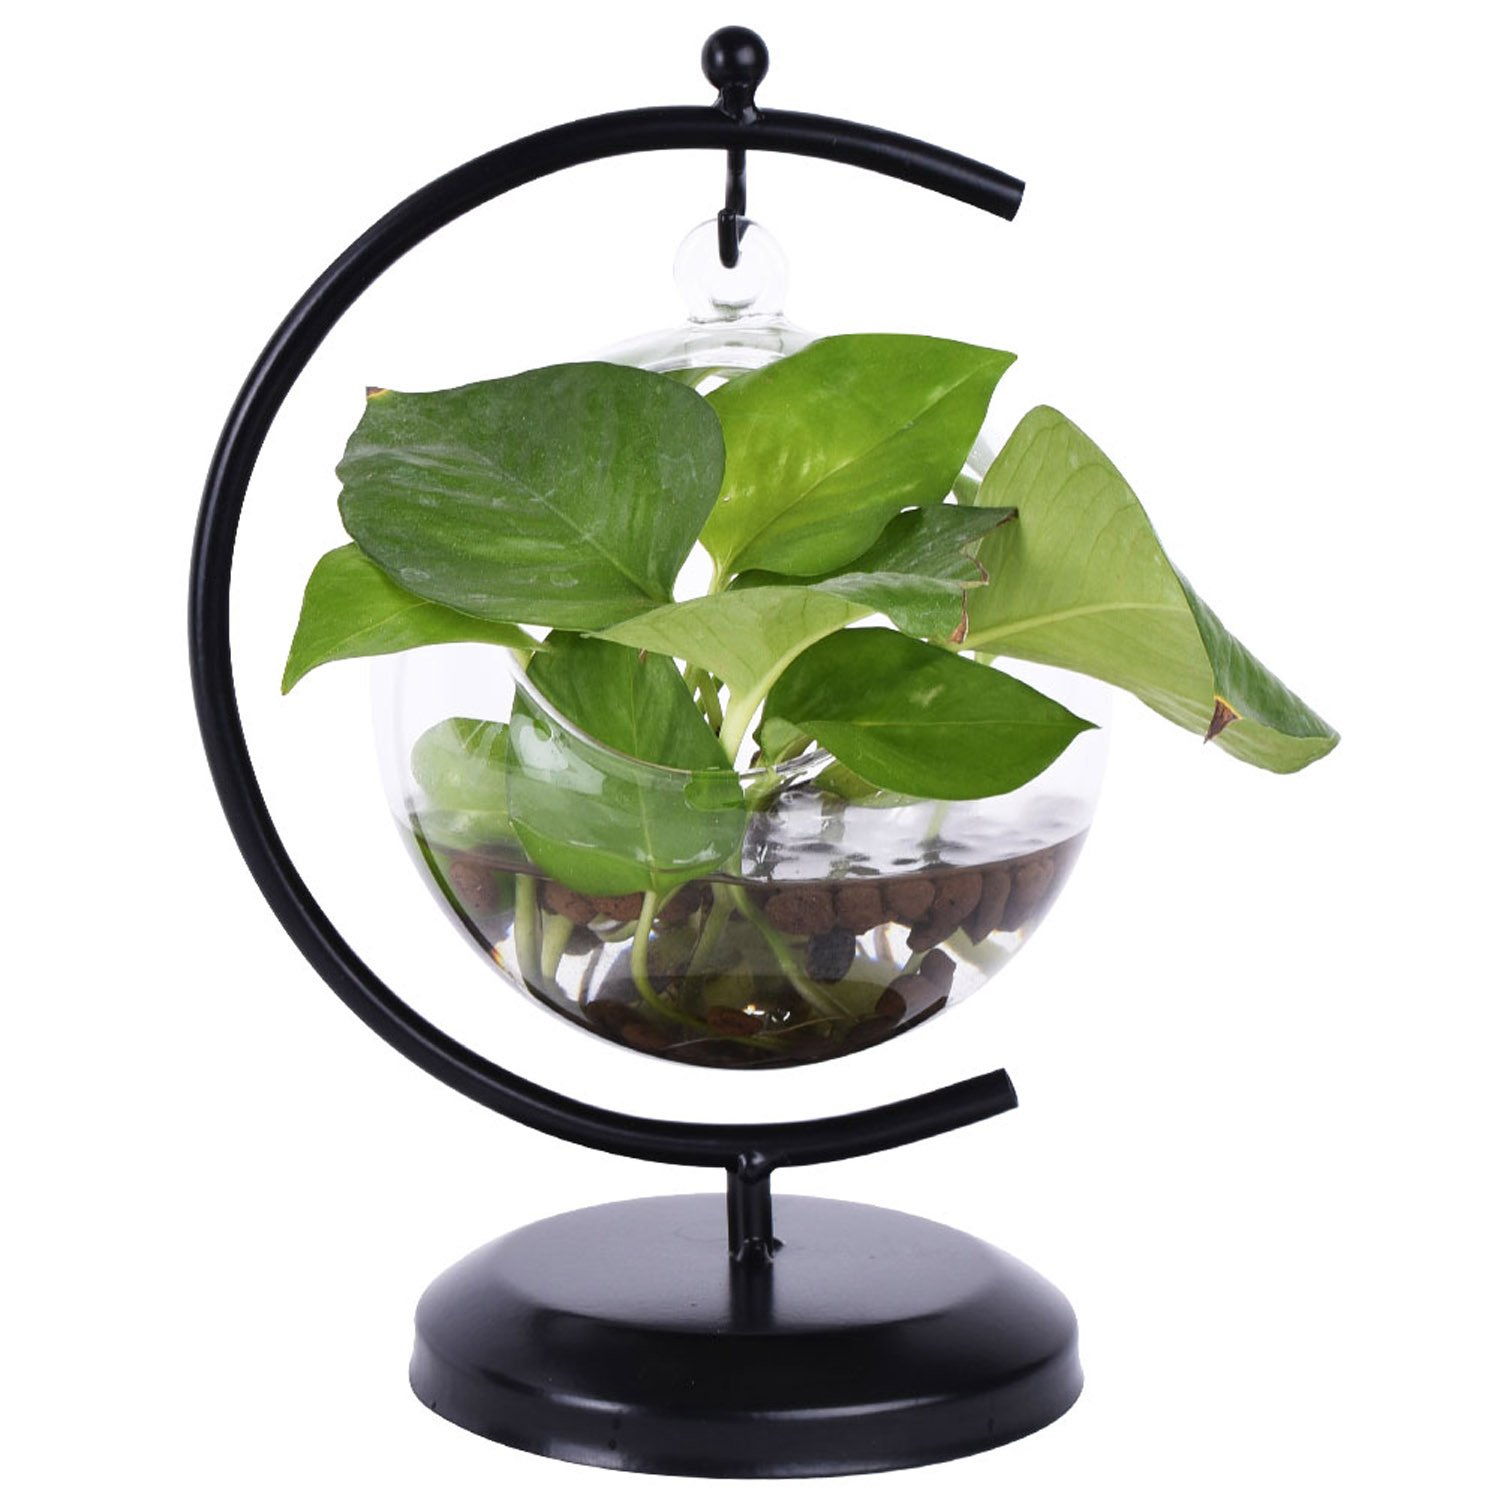 AUTOARK Glass Vase Plant Terrarium with Black Metal Stand,Office Desktop Potted Stand,Home & Office Decor Accent,1 Globe,APT-001 by AUTOARK